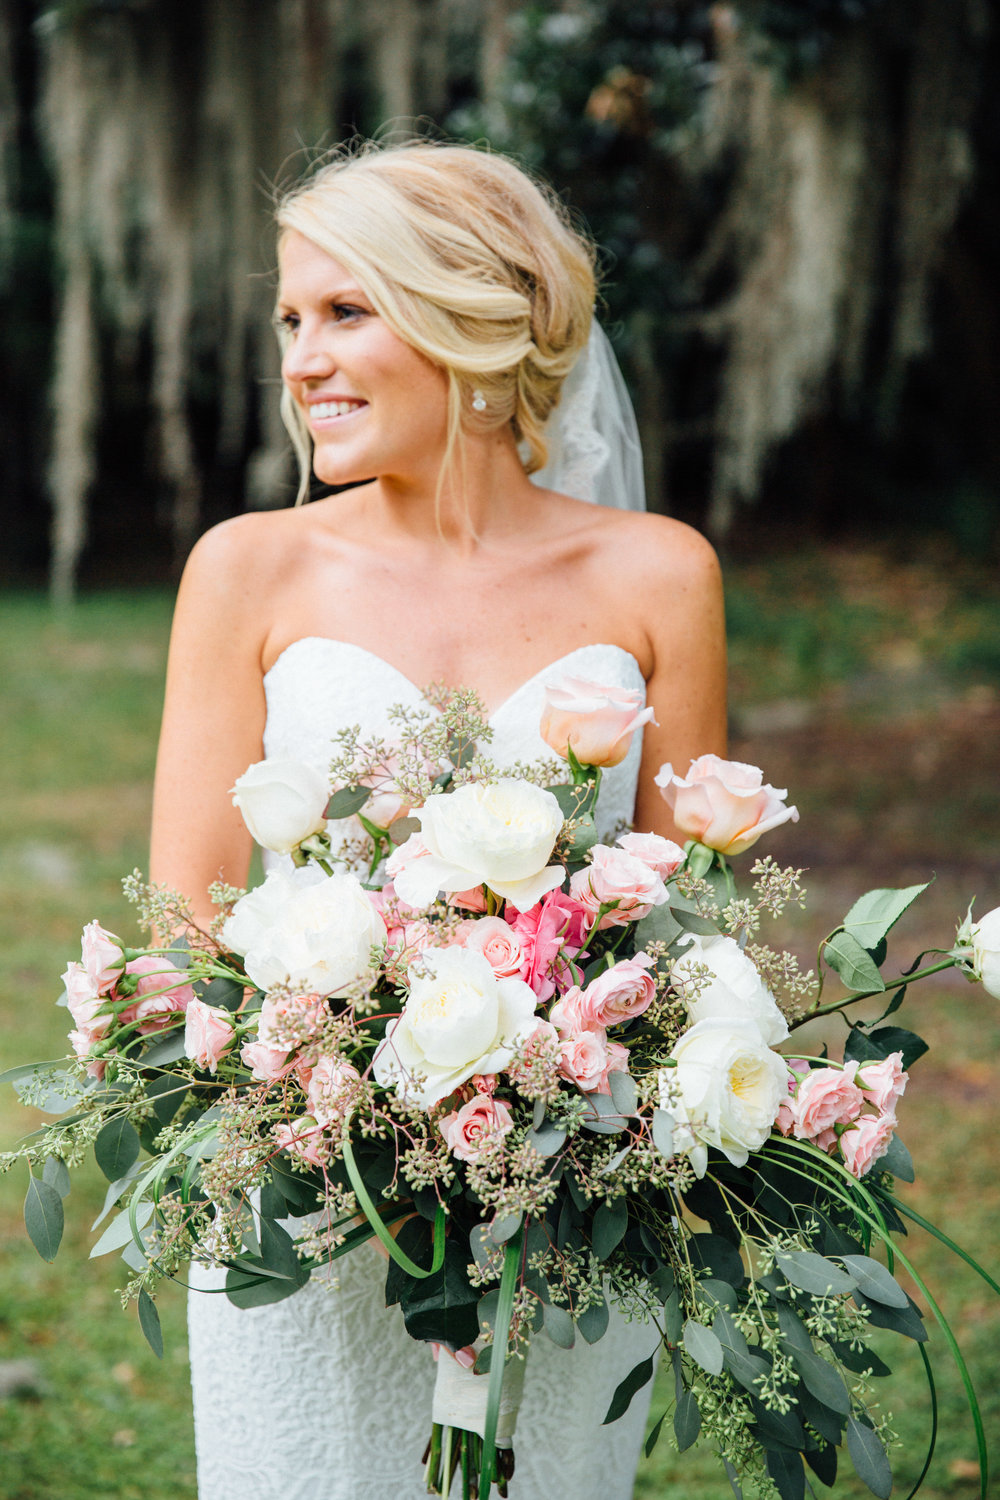 anna-benton-photography-savannah-bridal-boutique-ivory-and-beau-bridal-boutique-ti-adora-7552-lace-wedding-dress-jaclyn-jordan-anne-veil-southern-wedding-savannah-wedding-coastal-wedidng-savannah-wedding-planner-savannah-florist-savannah-weddings-6.jpg